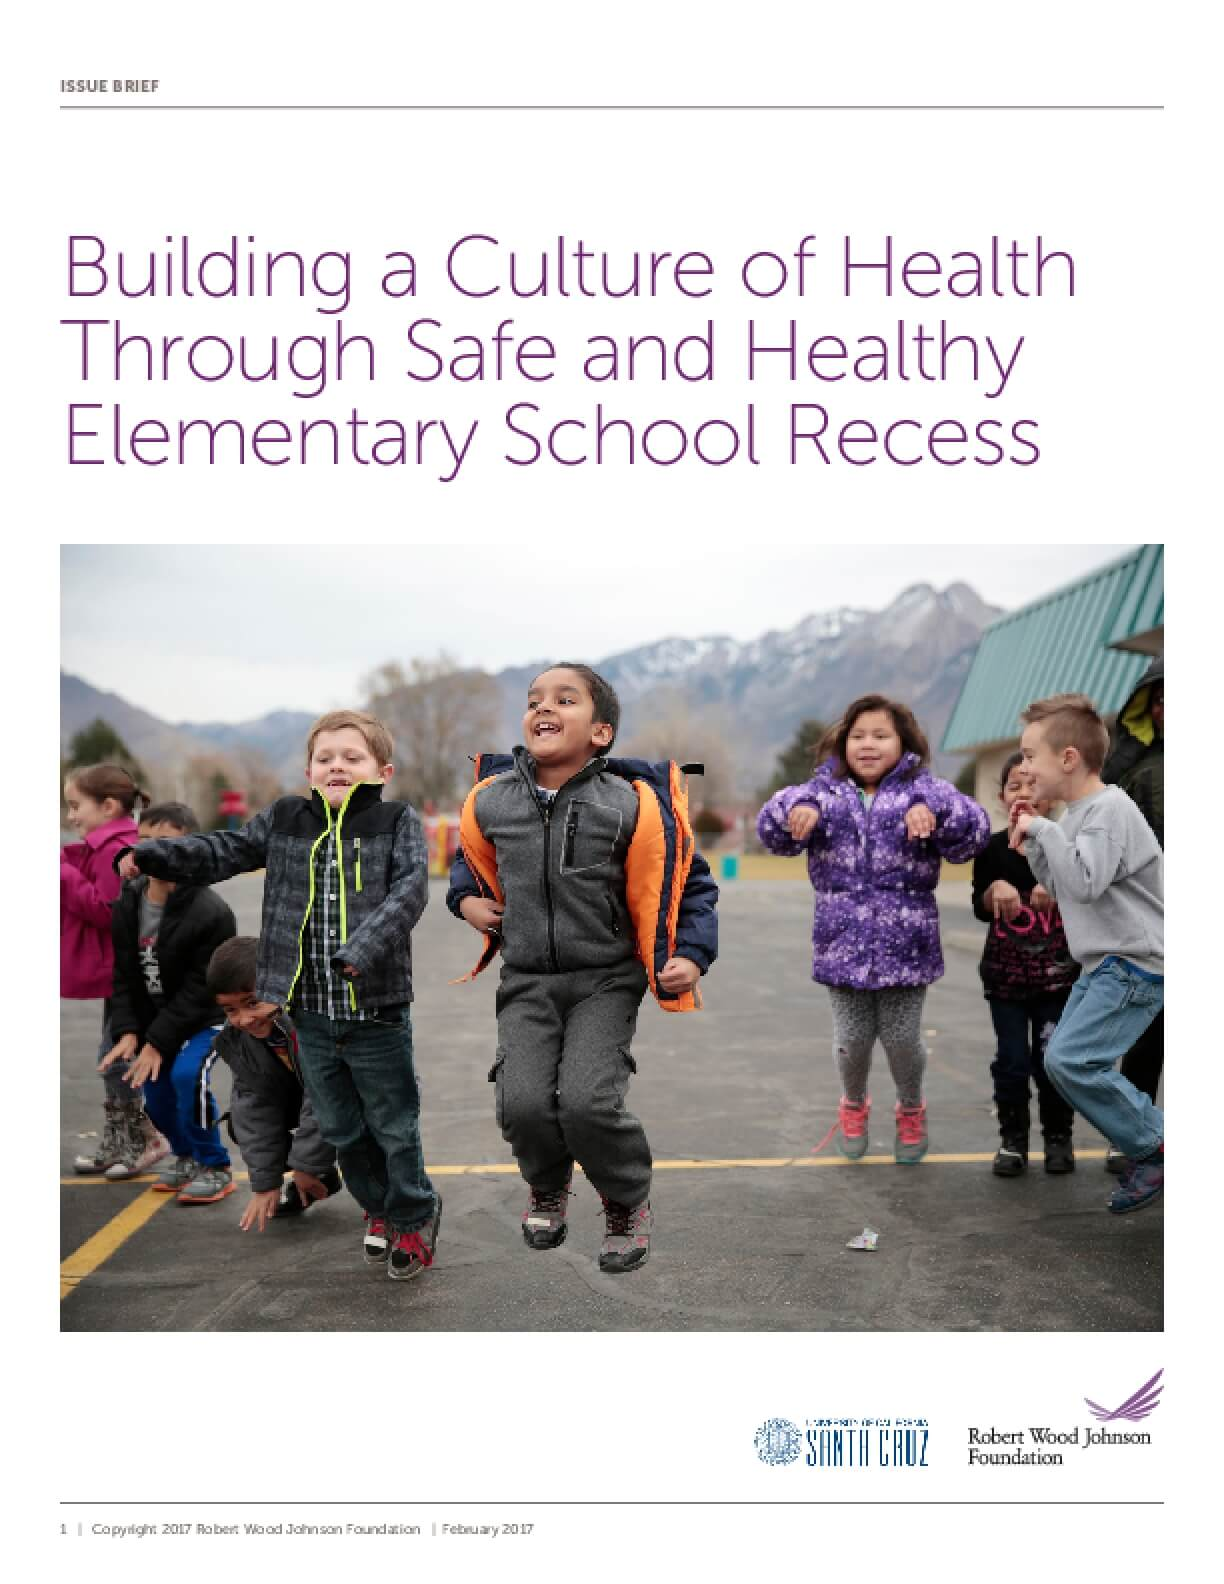 Building a Culture of Health Through Safe and Healthy Elementary School Recess